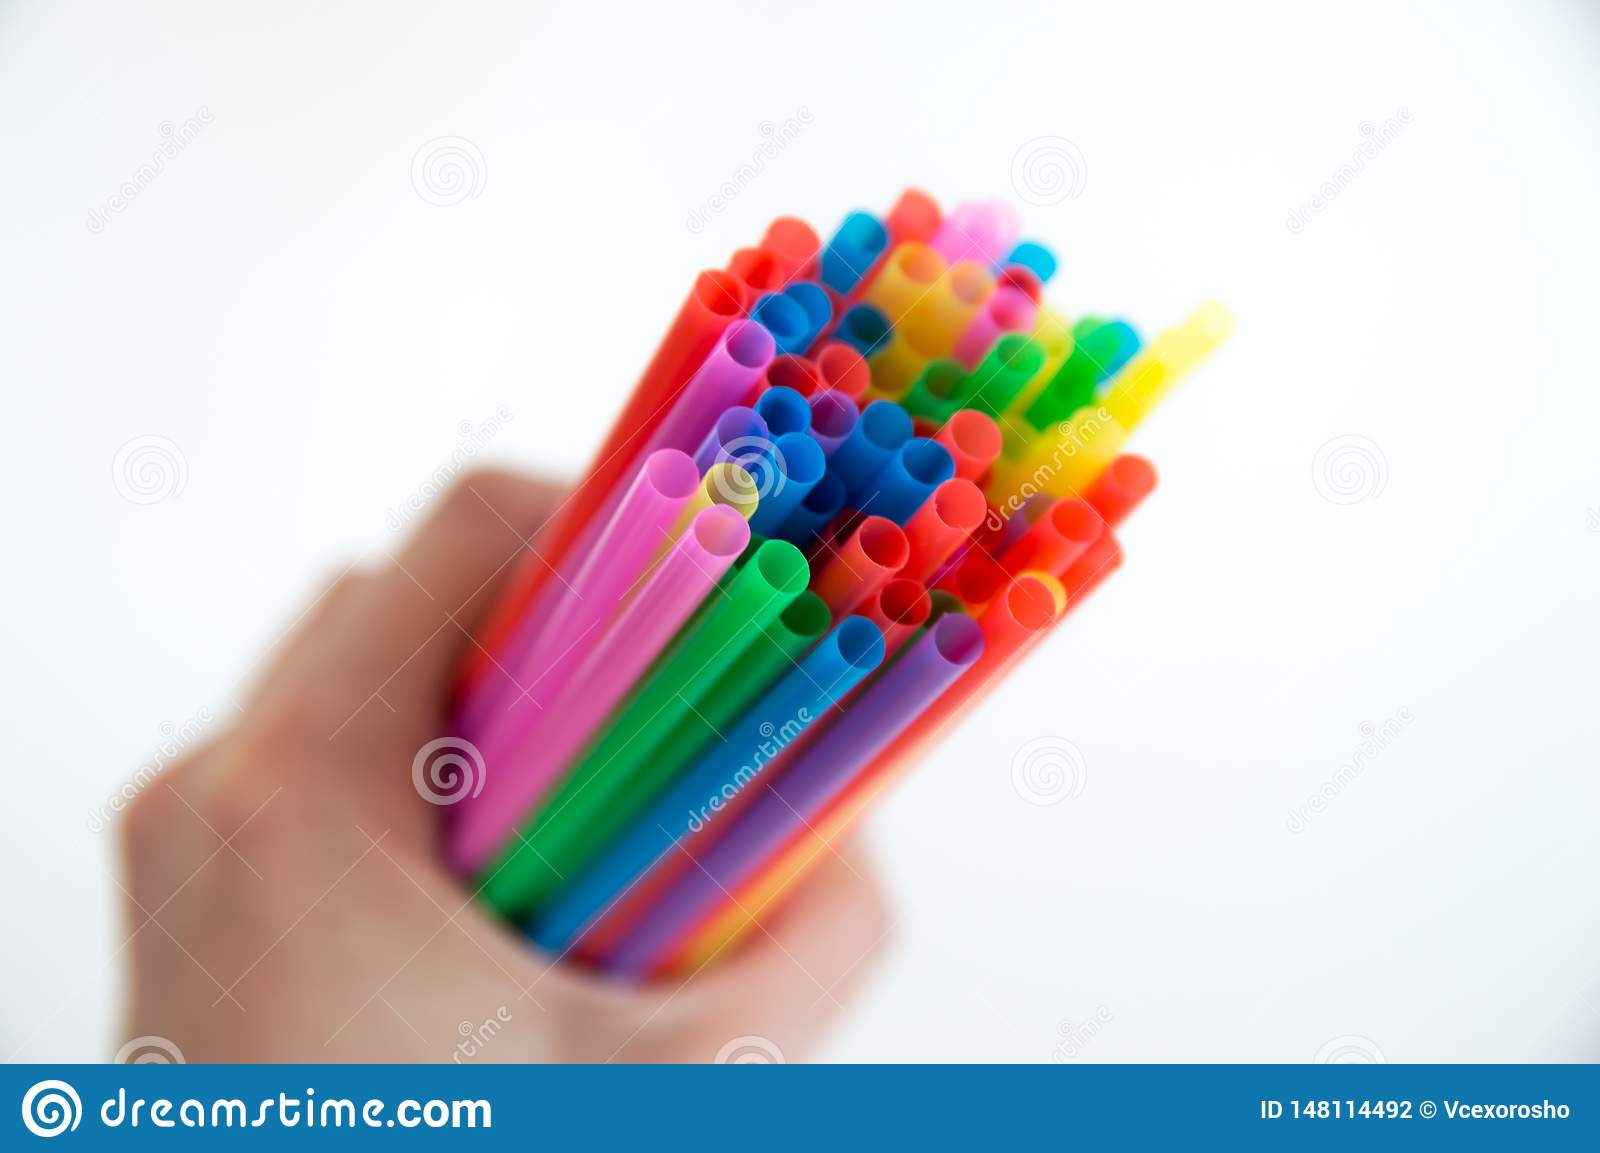 Colored wooden pencils for drawing in a glass stand on a white background. Children`s multi-colored pencils for drawing